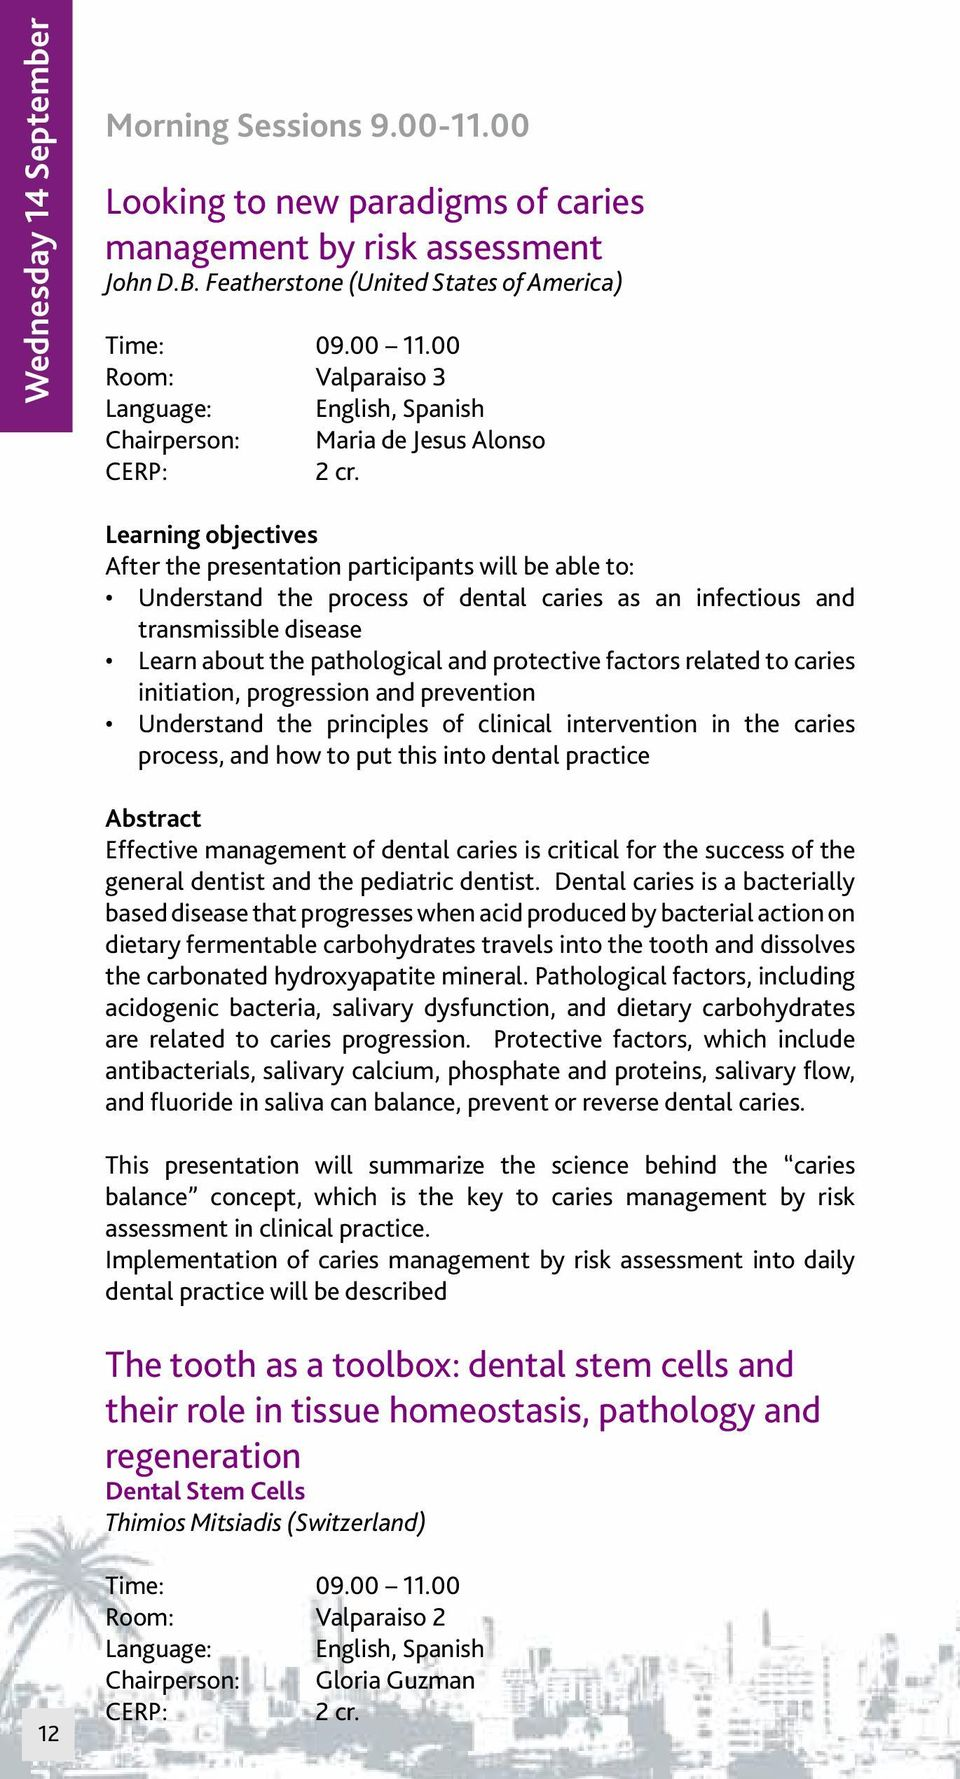 an infectious and transmissible disease Learn about the pathological and protective factors related to caries initiation, progression and prevention Understand the principles of clinical intervention